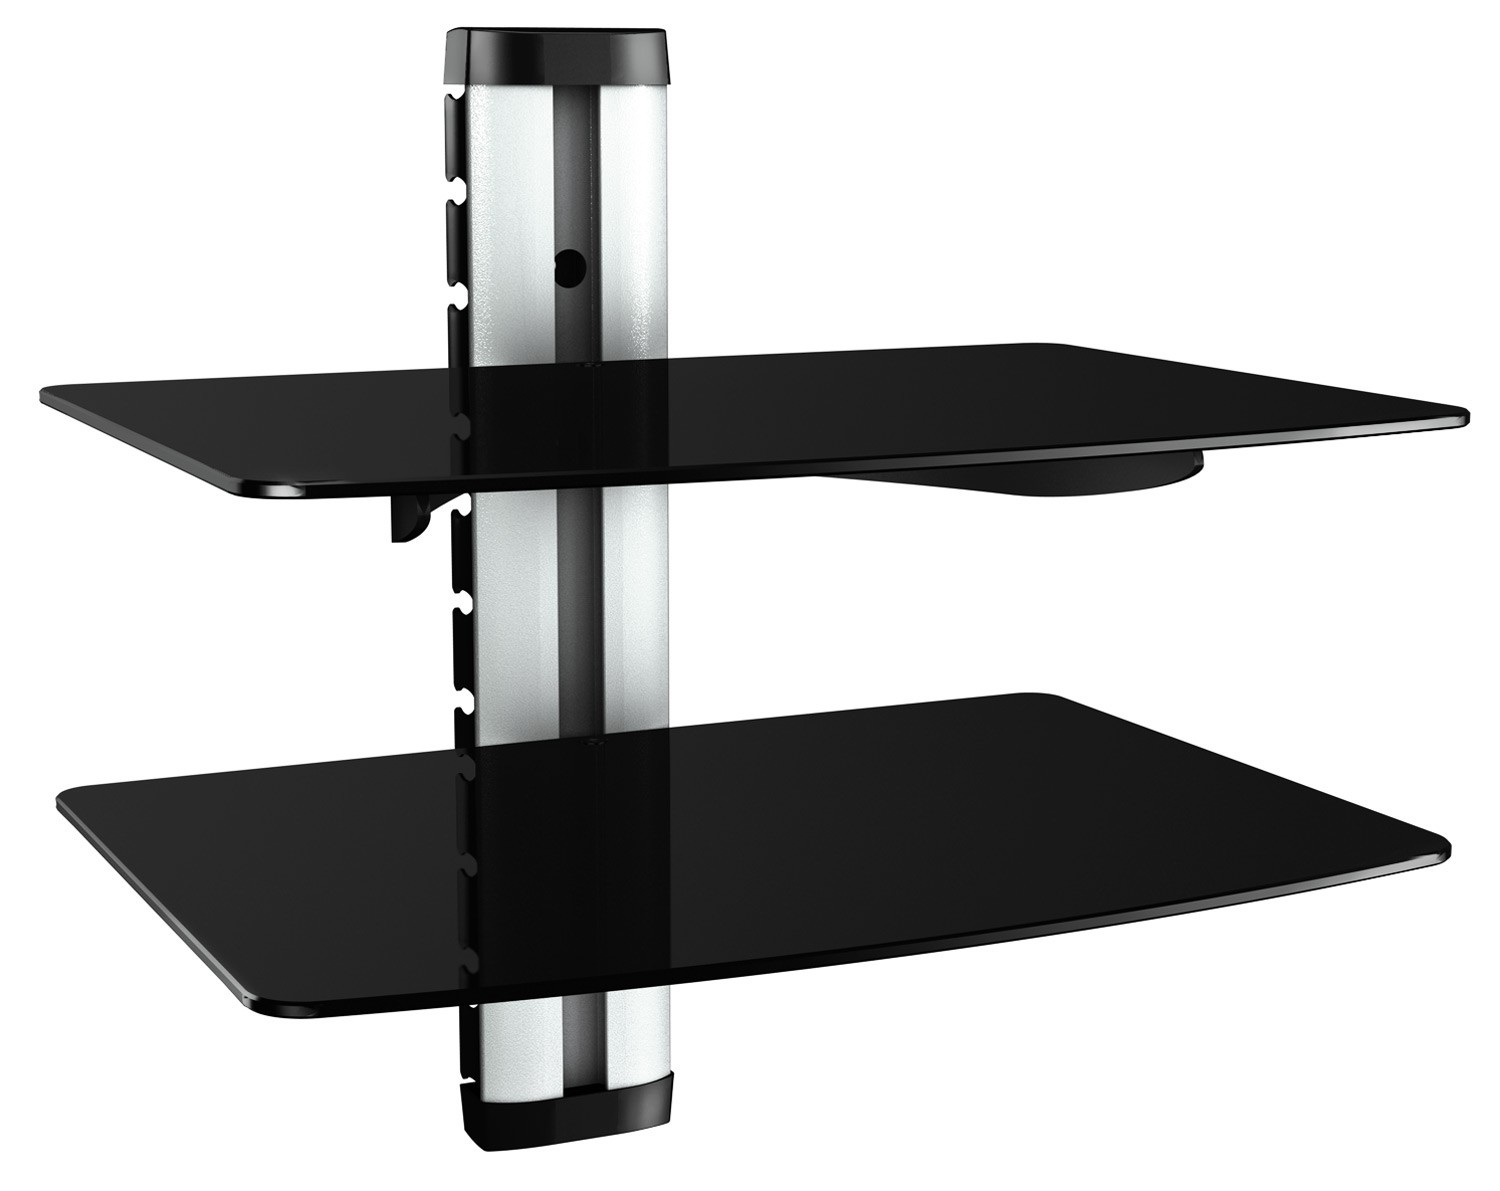 hifi regal dvd wandhalterung glas wandboard glasregal xl 11178. Black Bedroom Furniture Sets. Home Design Ideas